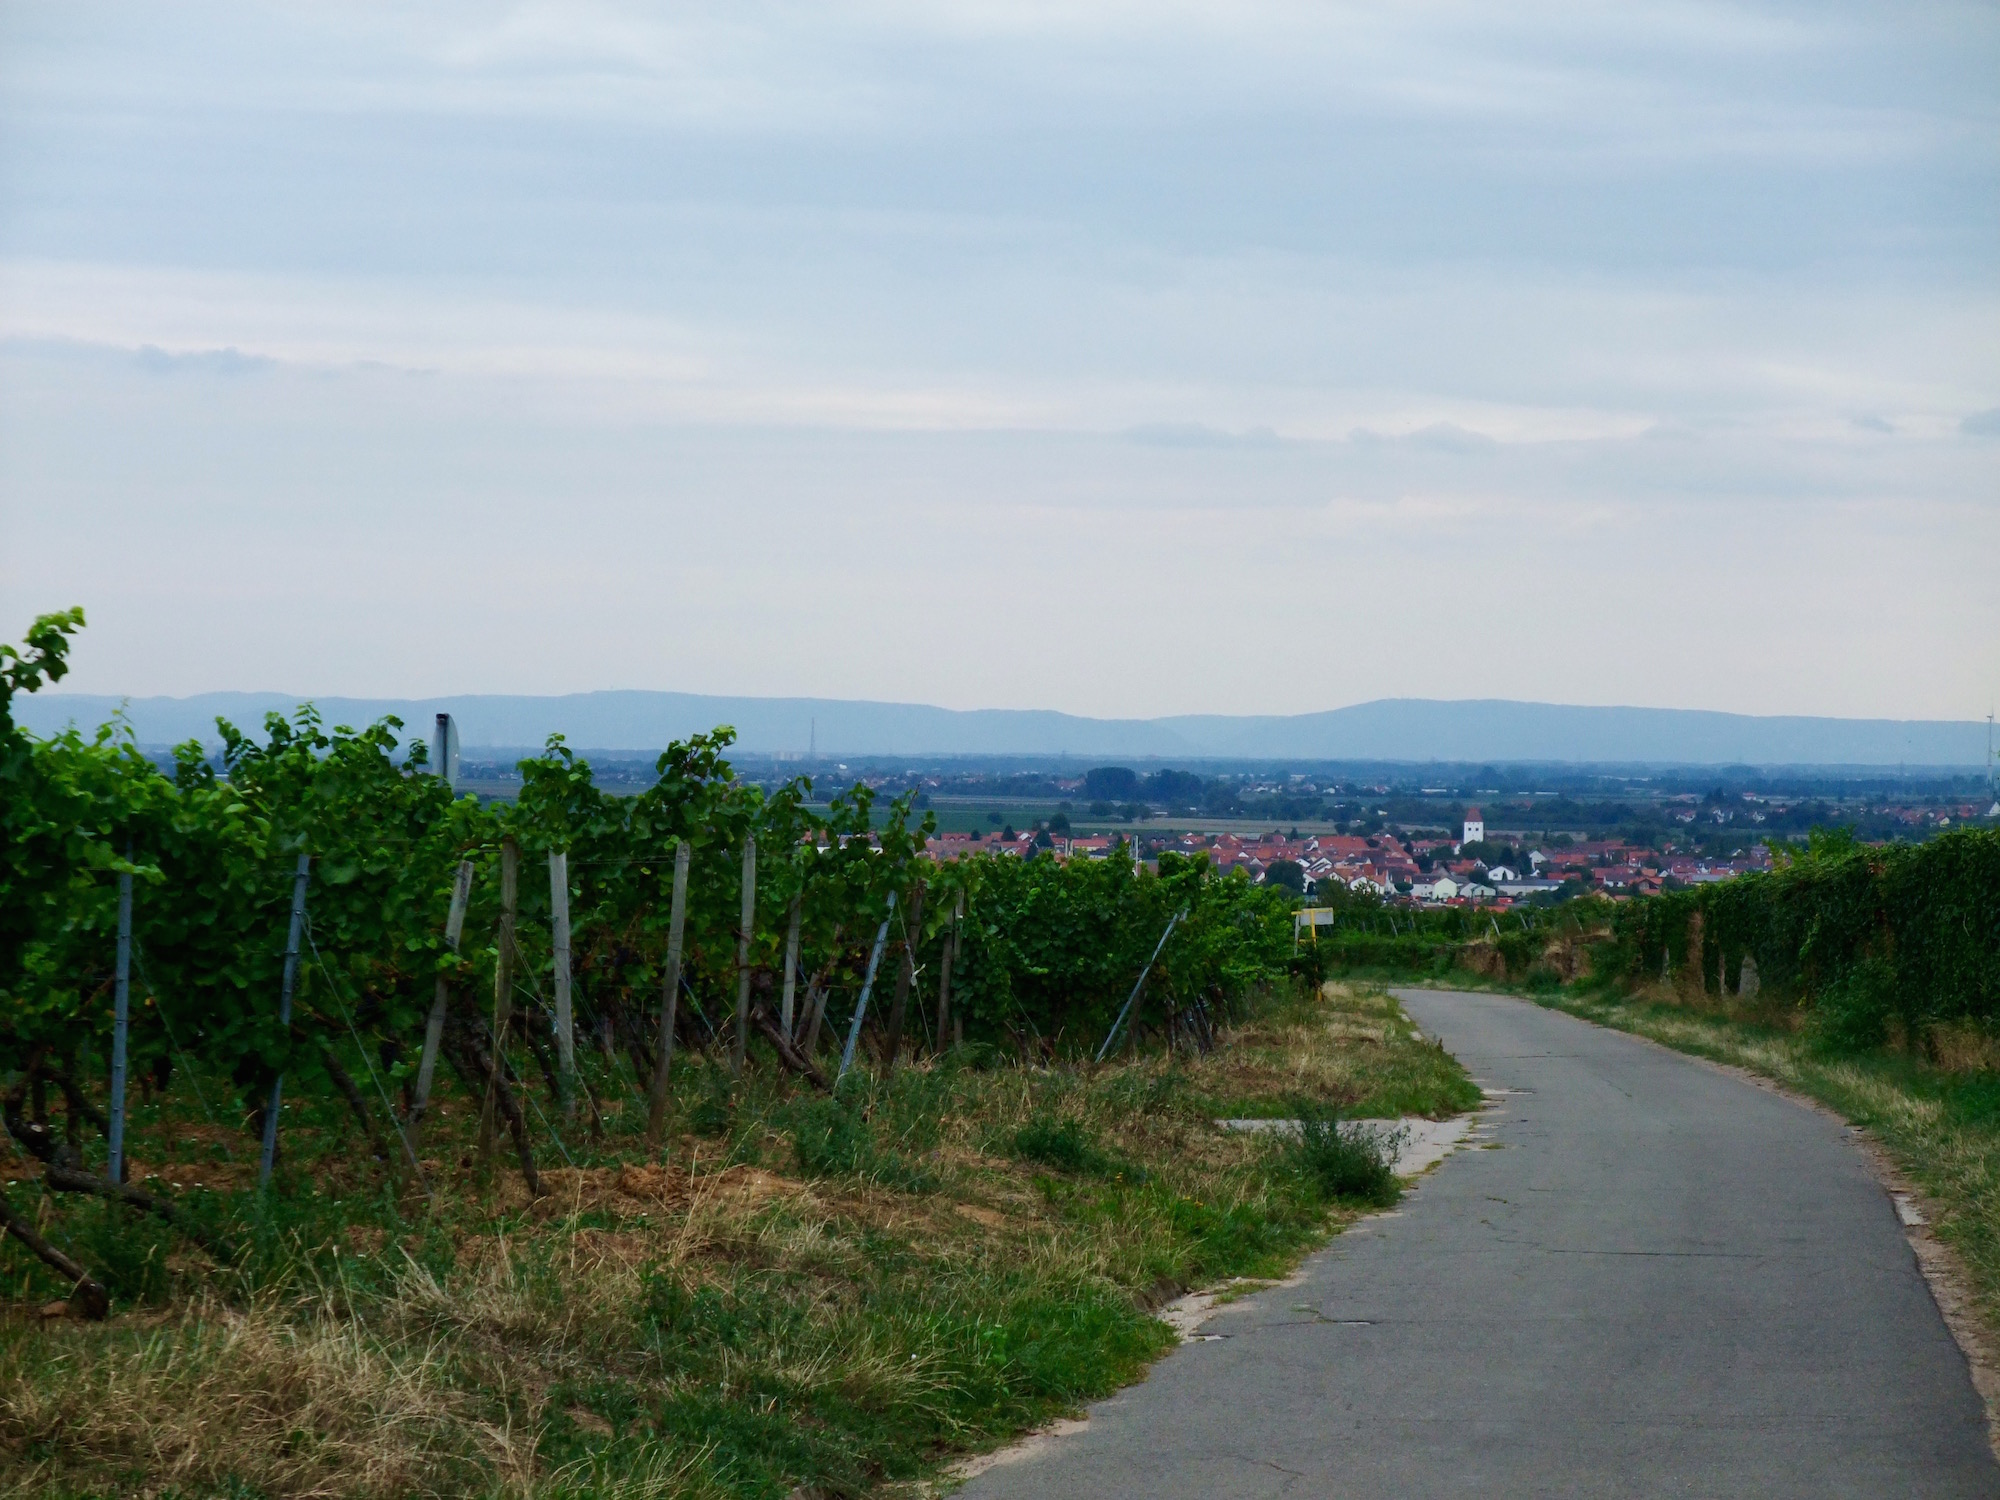 Our walk through the vineyards